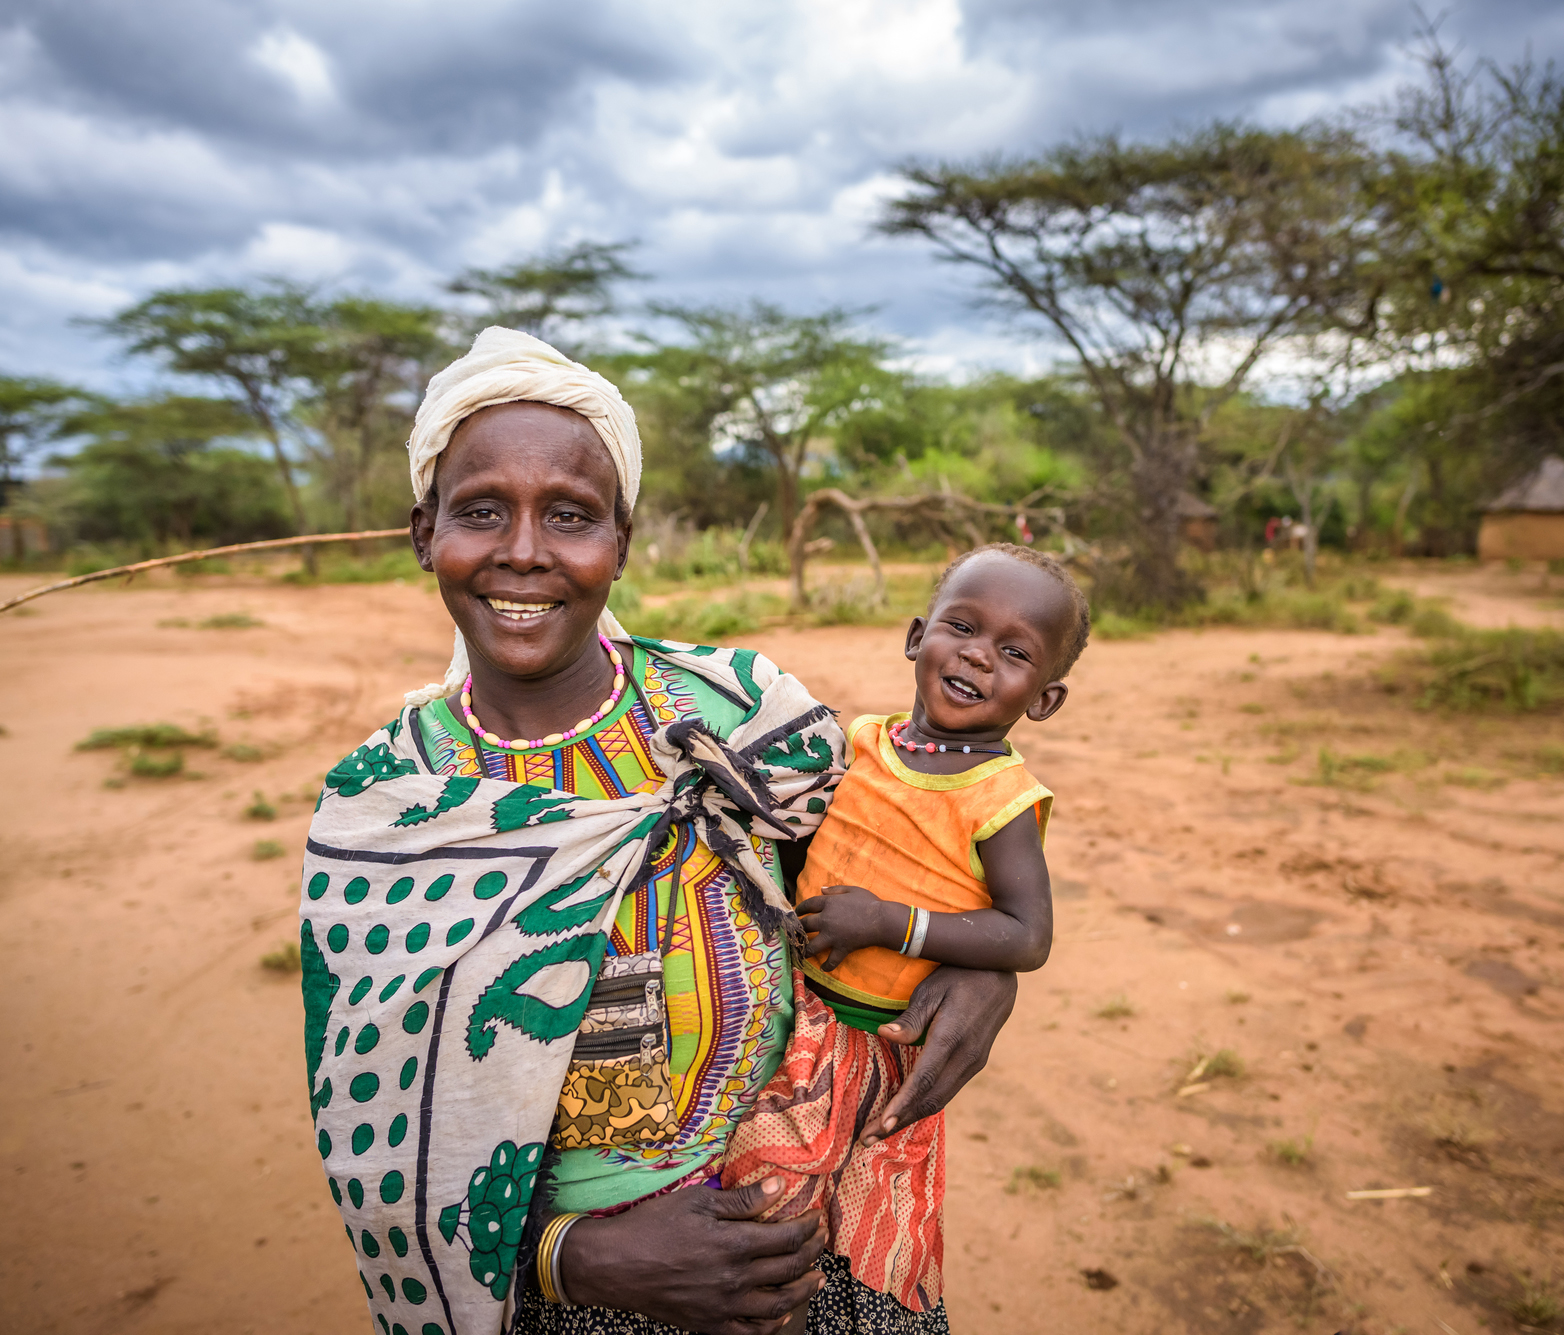 Mother holding child in rural Kenya